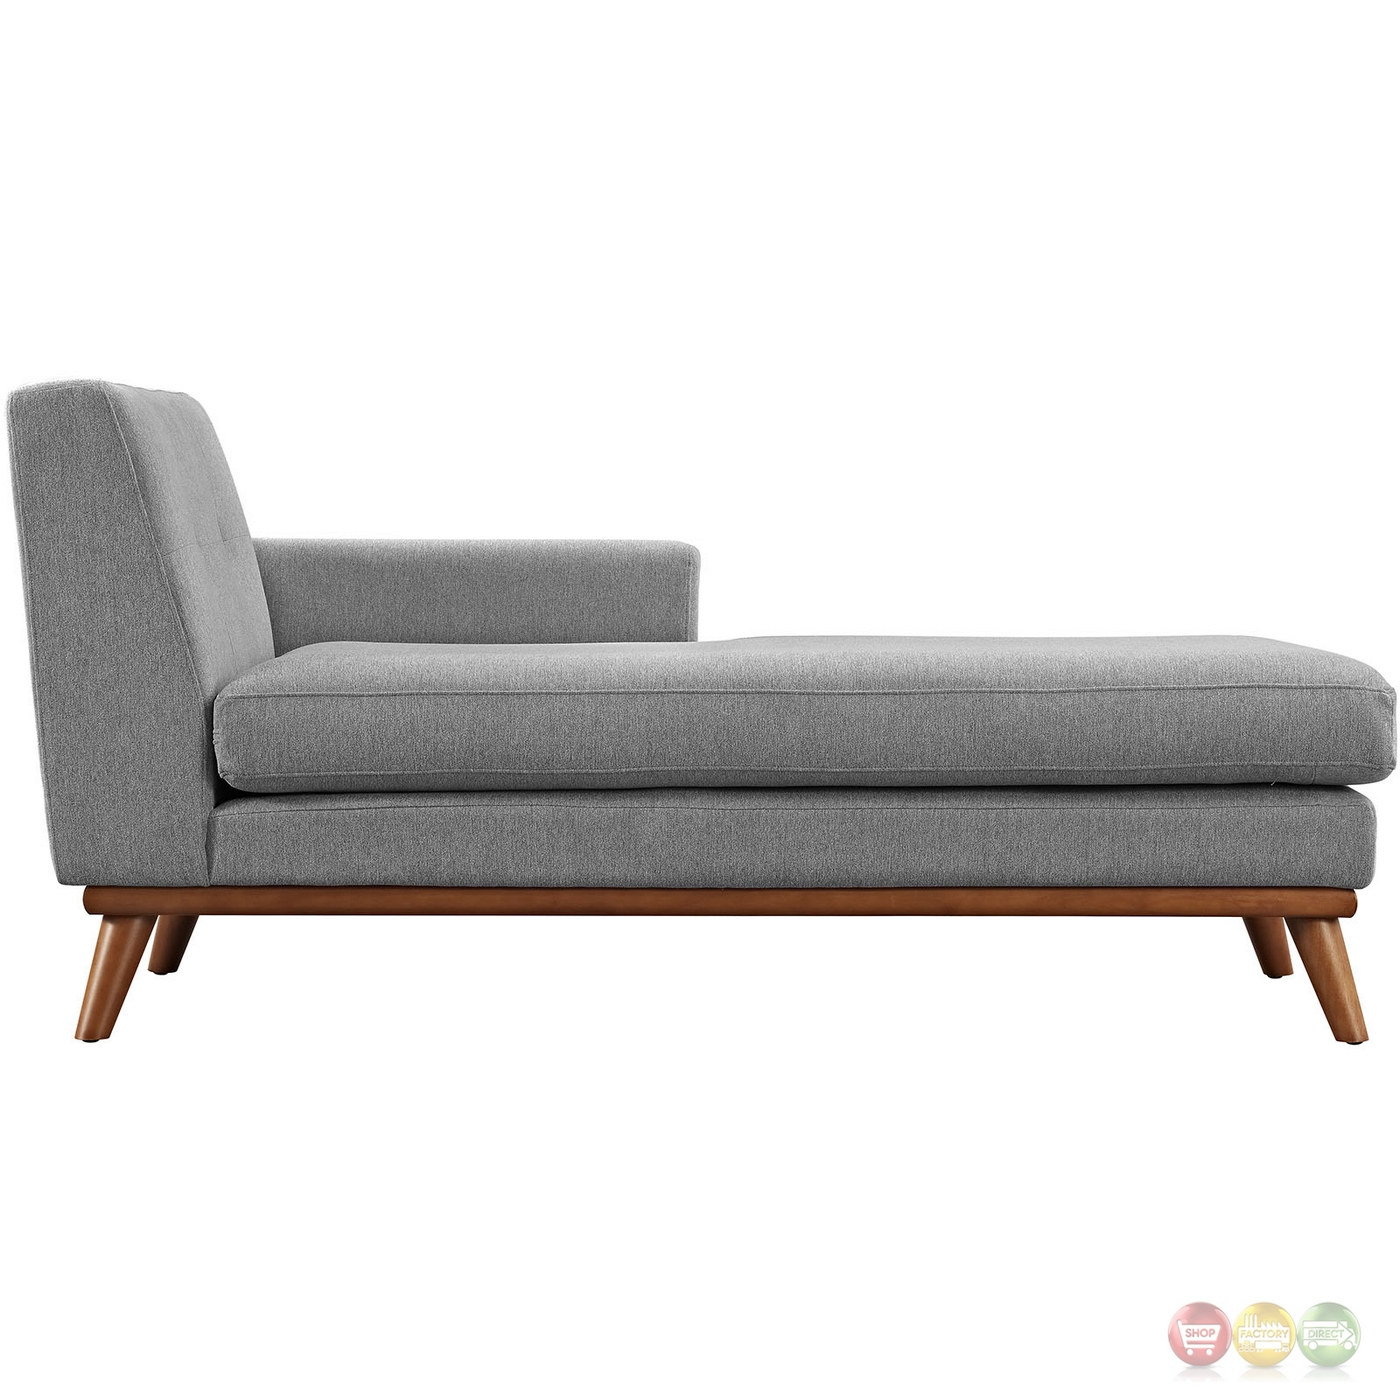 Engage modern button tufted upholstered right arm chaise for Button tufted chaise